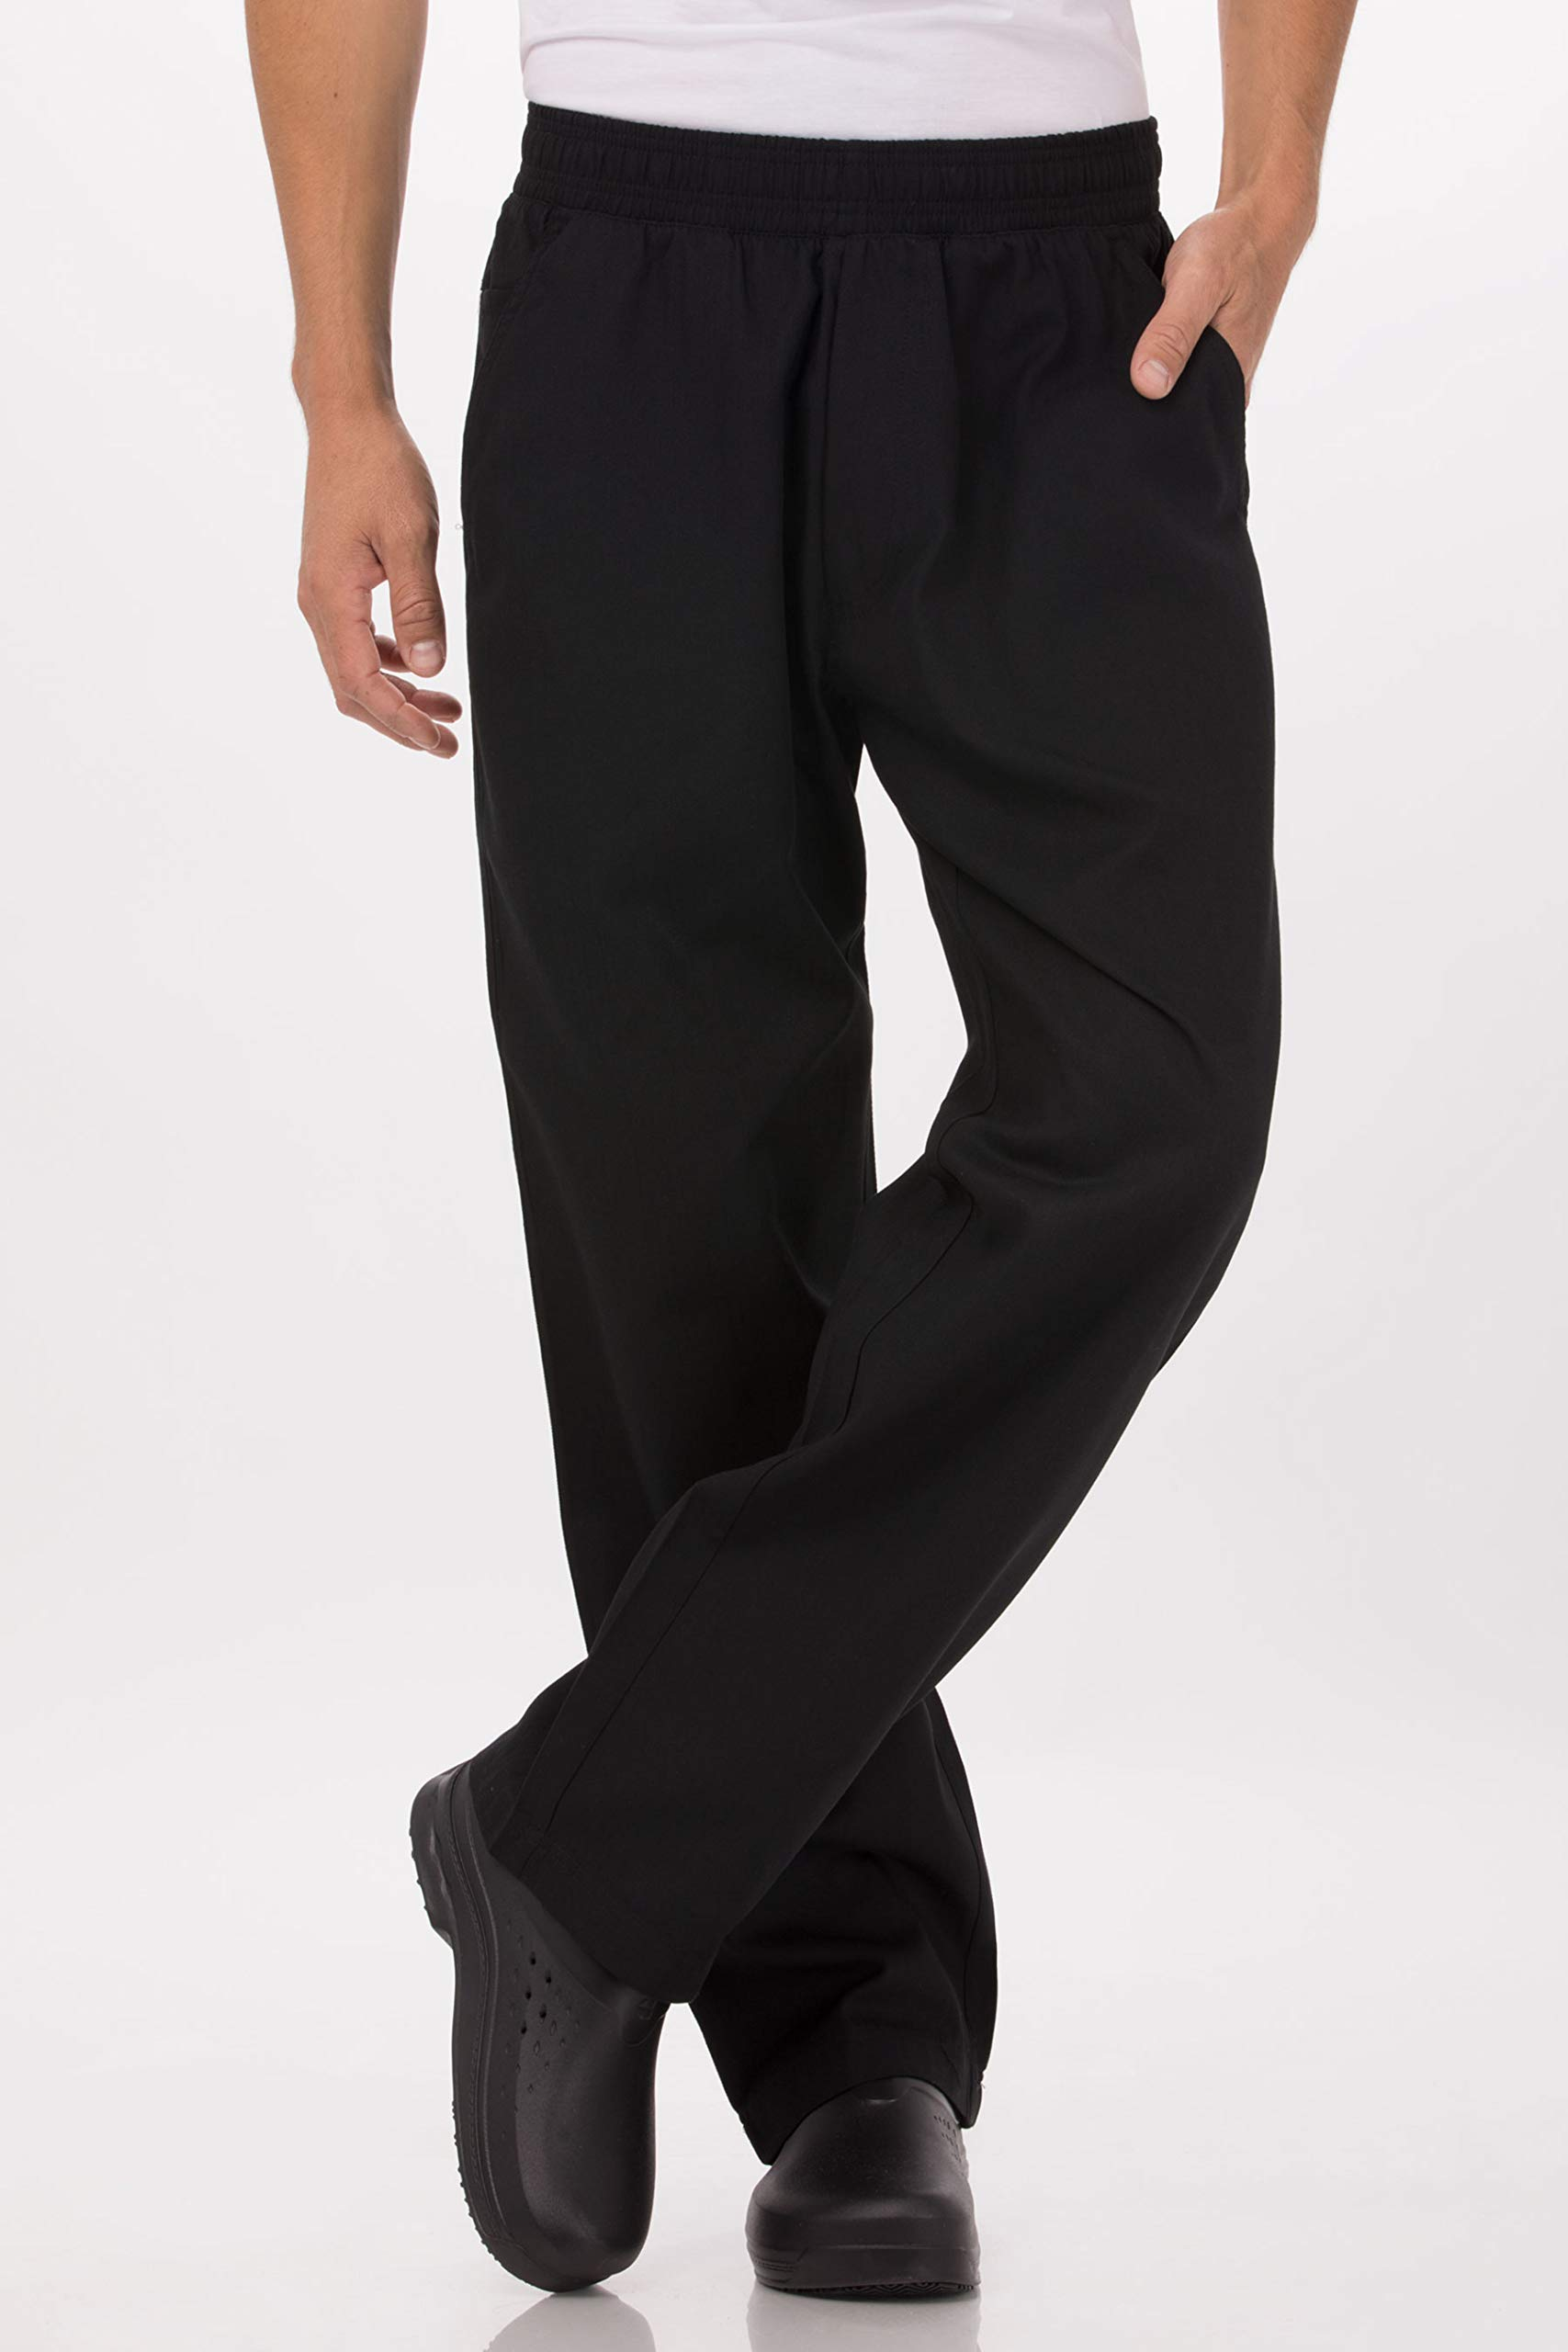 Chef Works Men's Better Built Baggy Chef Pants, Black, 4X-Large by Chef Works